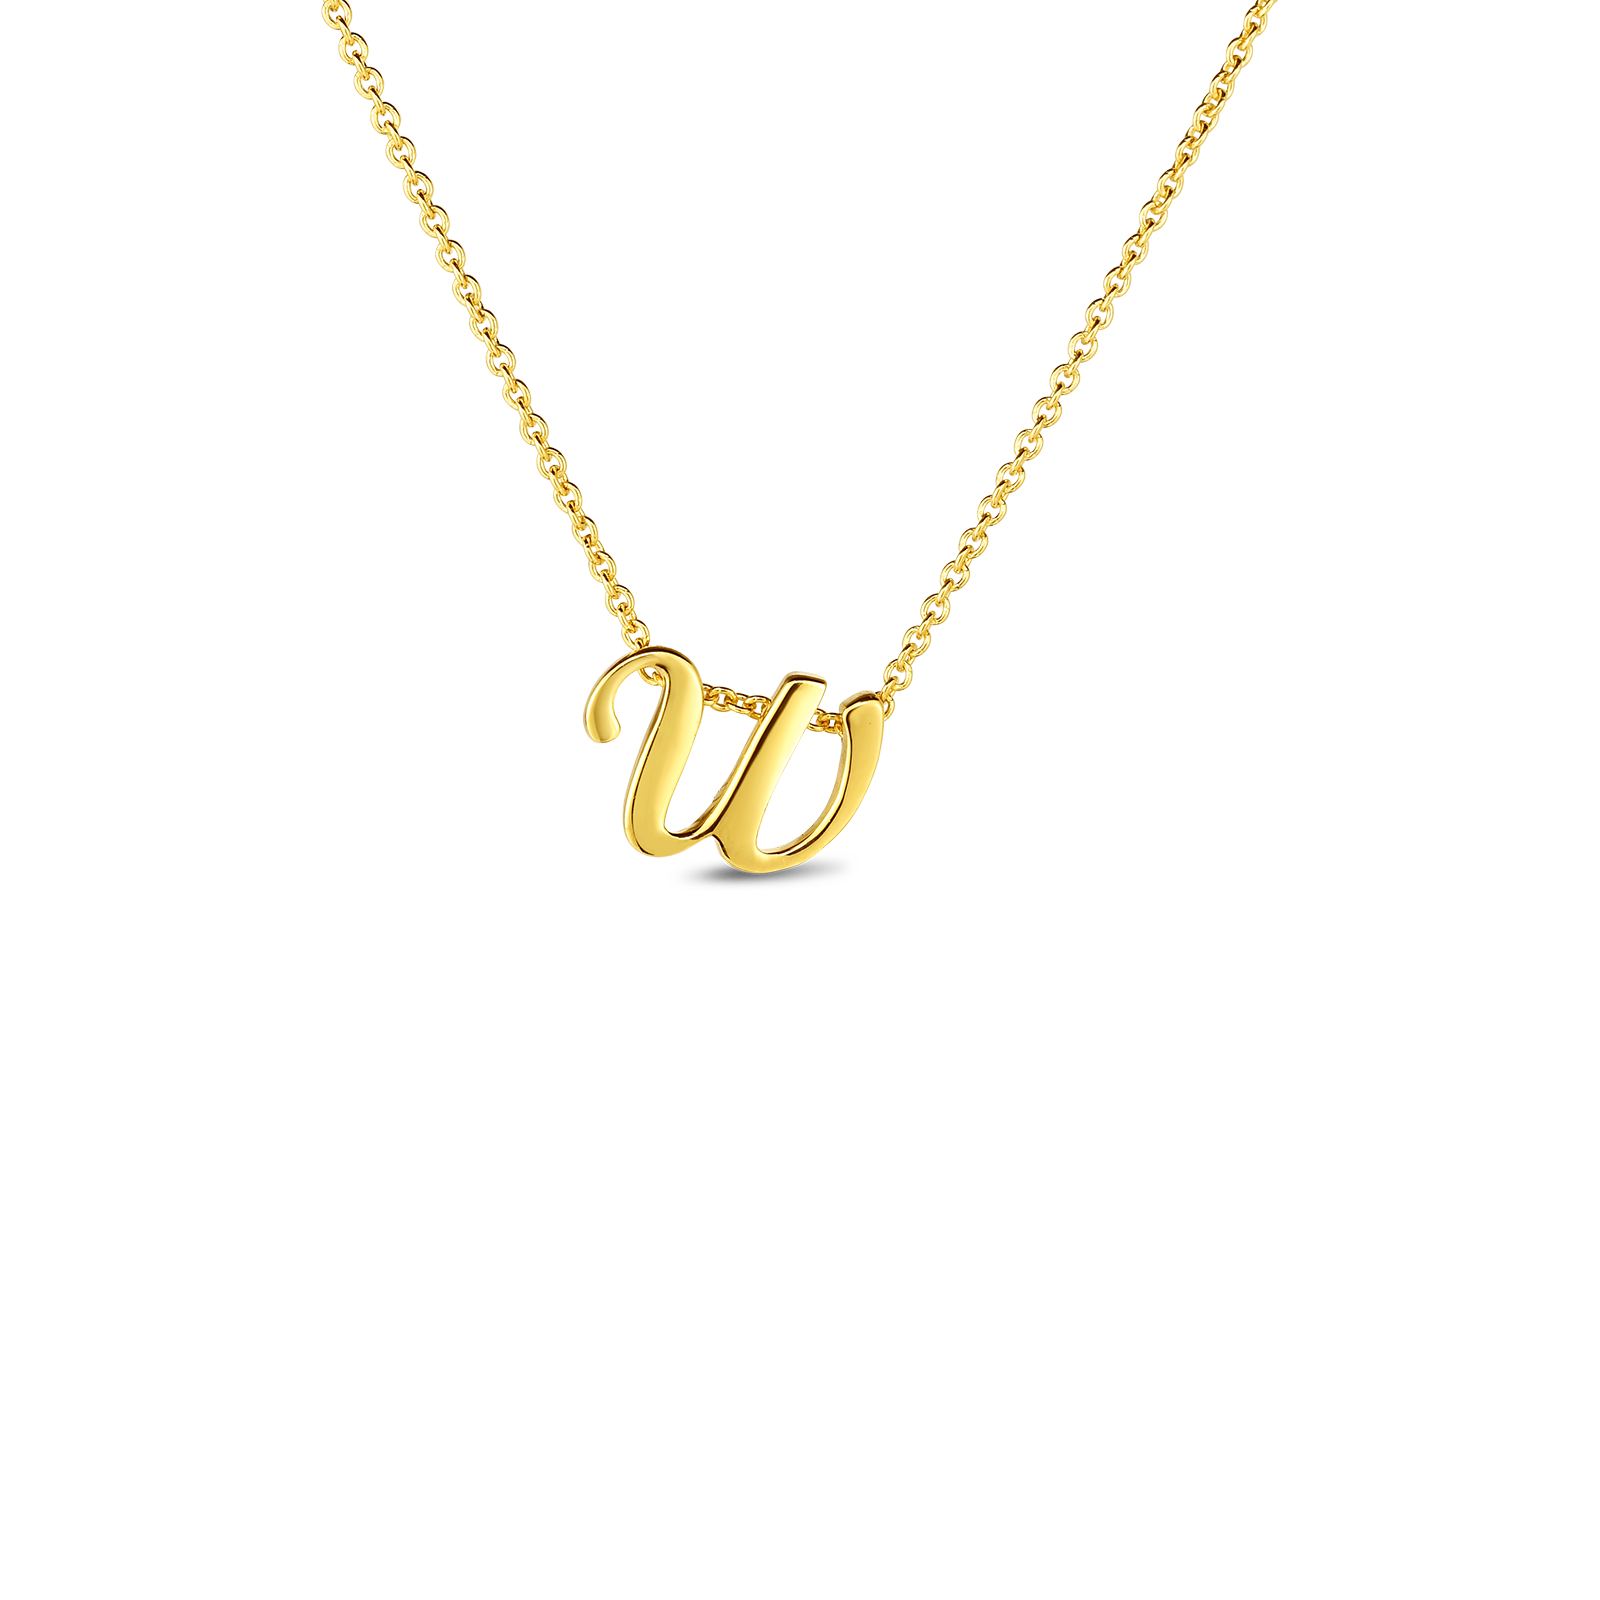 18k Small Script Initial 'W' Pendant On Chain